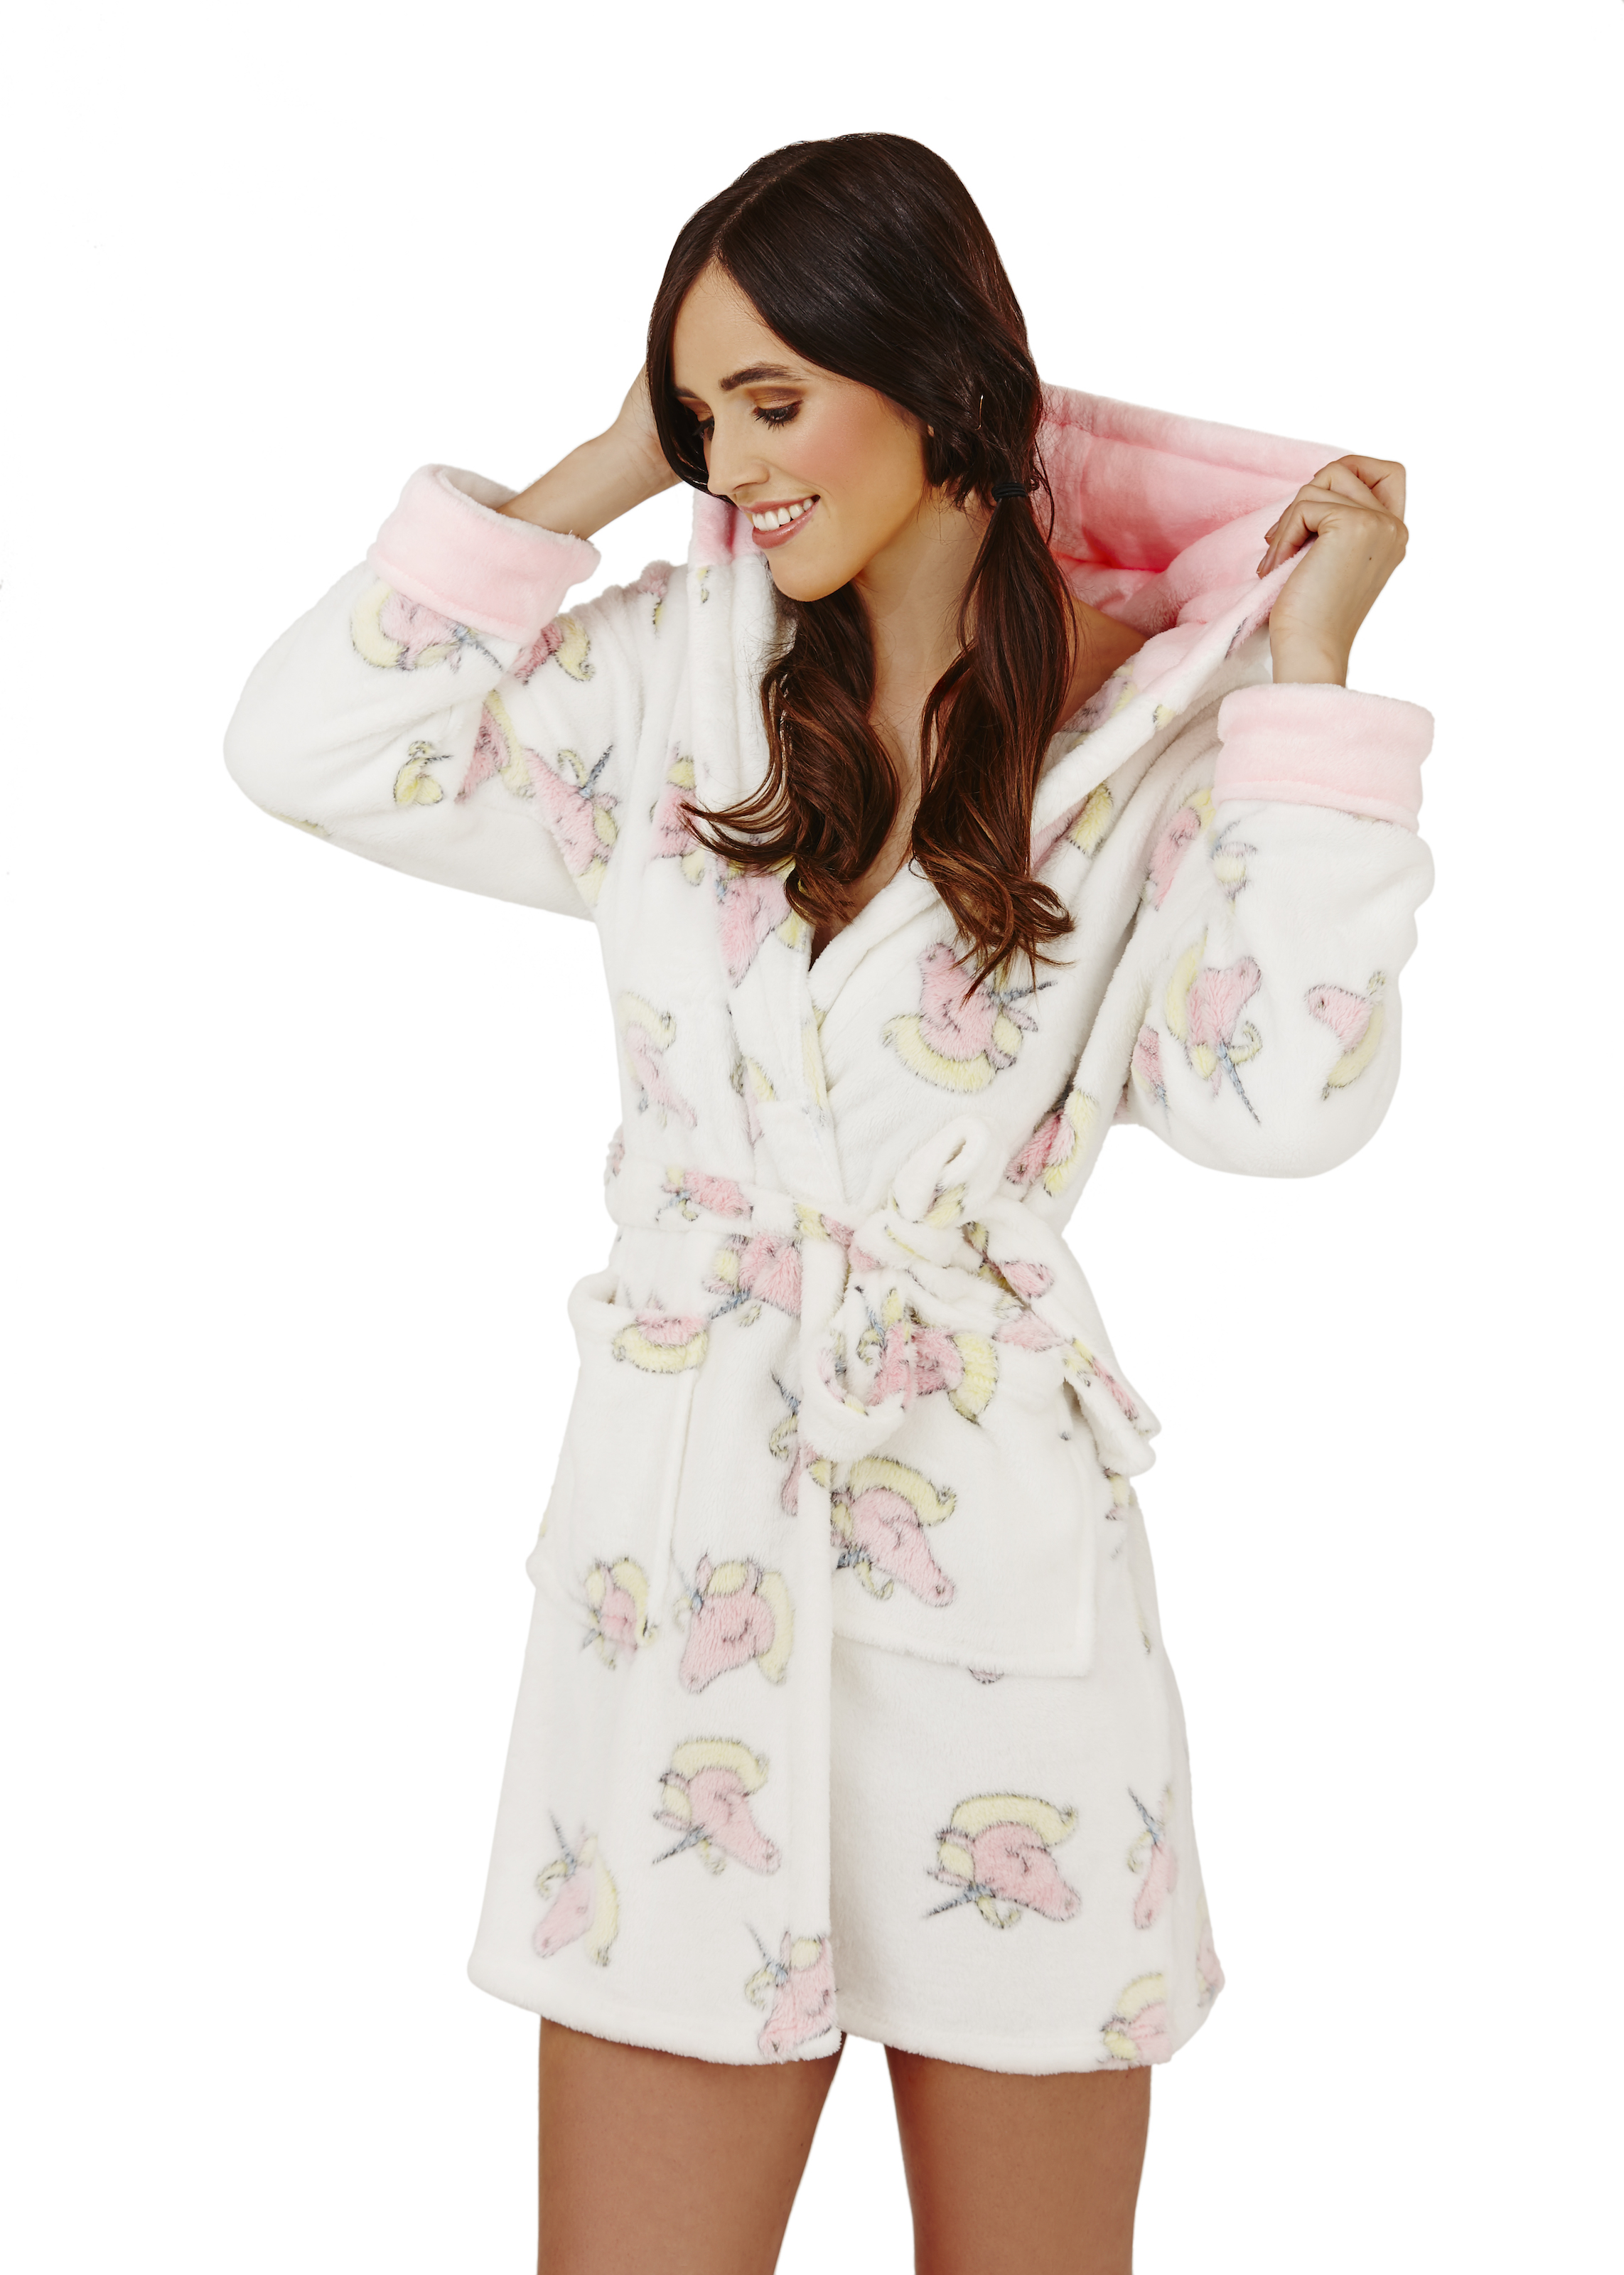 Women's Robes. invalid category id. Women's Robes. Showing 3 of 3 results that match your query. Search Product Result. Product Title. George. See Details. Product Spec. George. Product - Sleep Chic Womens Plush White Snowflake Print Bath Robe Plush Housecoat. Product Image. Product Title. Sleep Chic Womens Plush White Snowflake Print Bath.